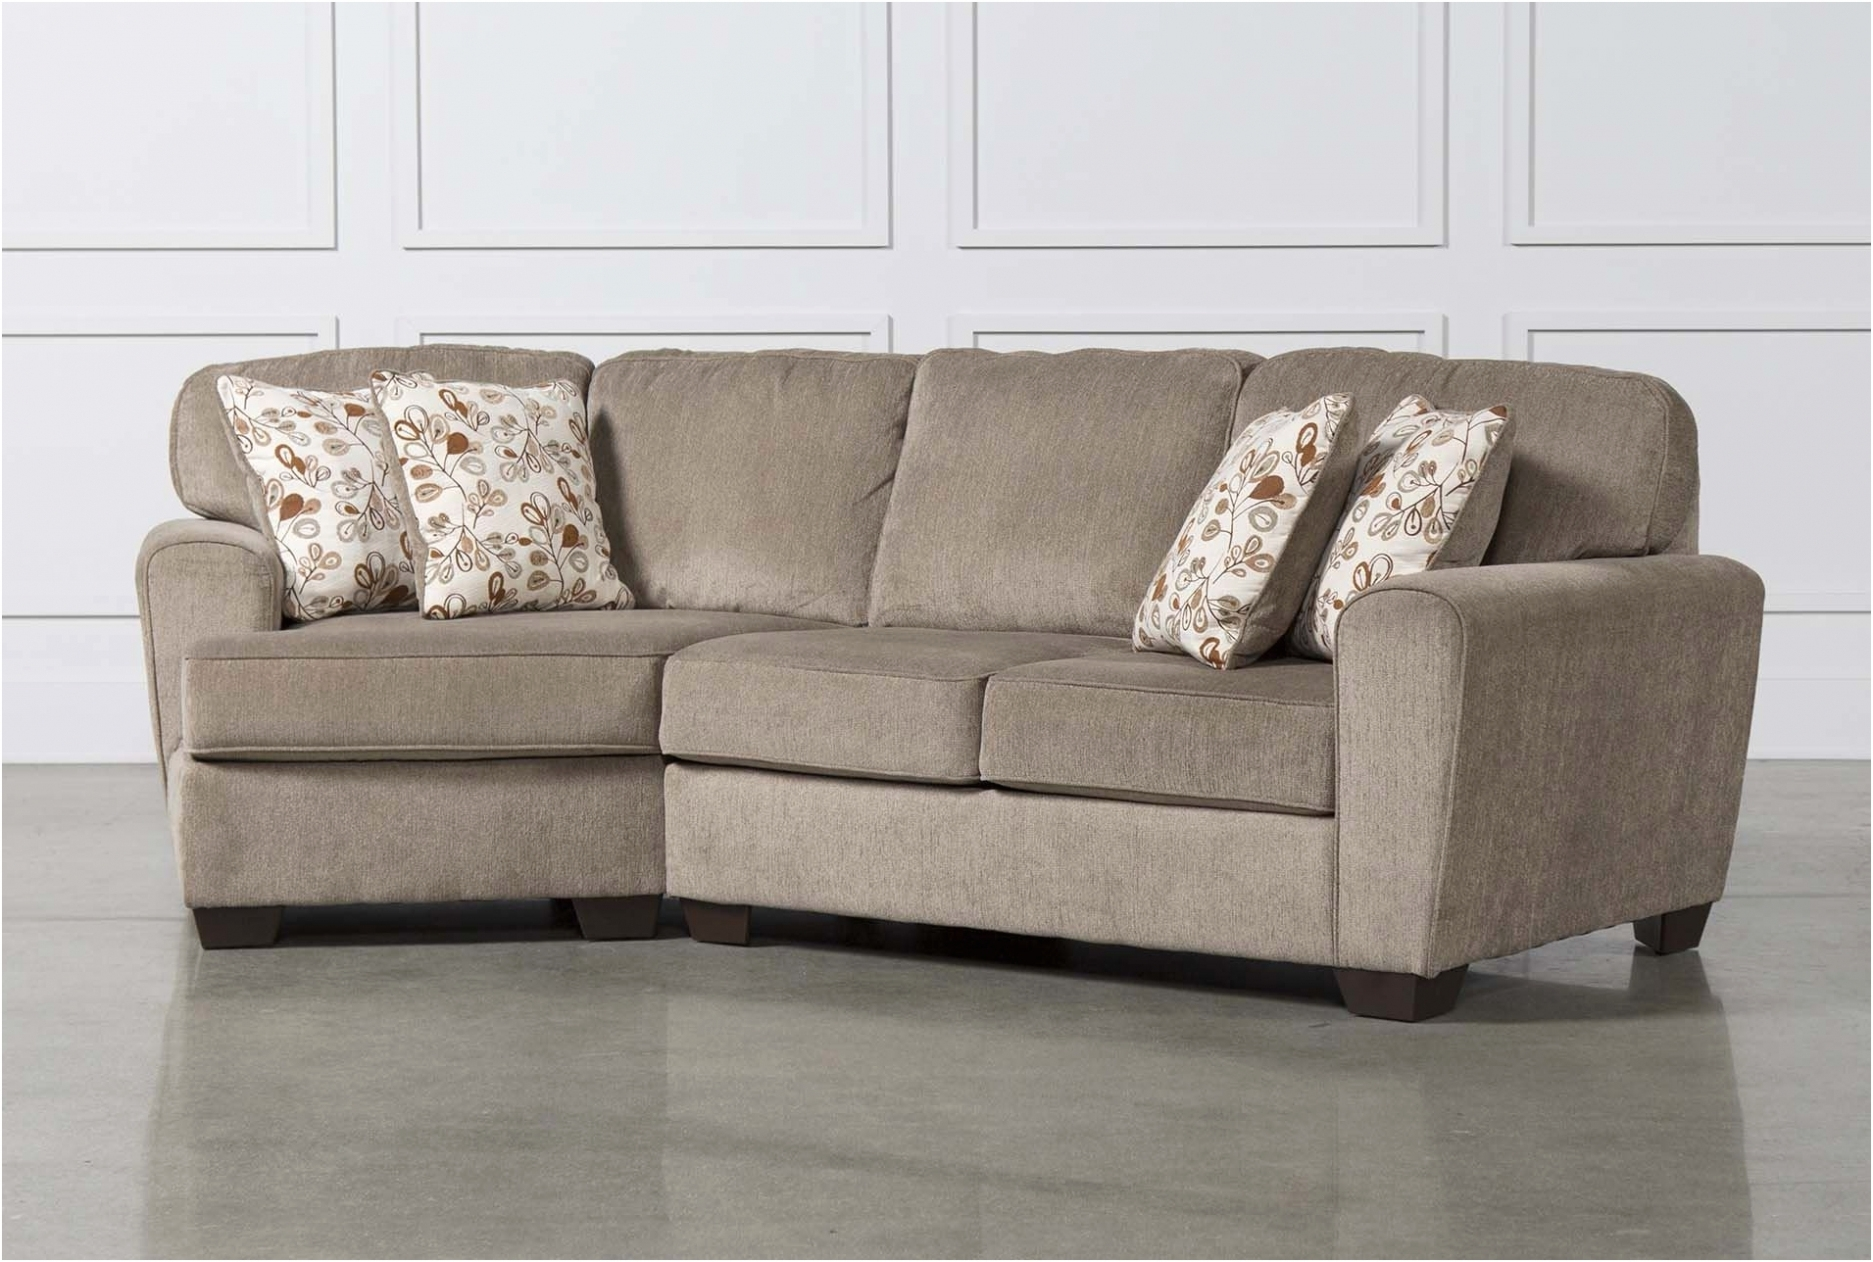 Living Spaces Sectional Sofa Bed - Sofa Design Ideas inside Delano 2 Piece Sectionals With Raf Oversized Chaise (Image 25 of 30)